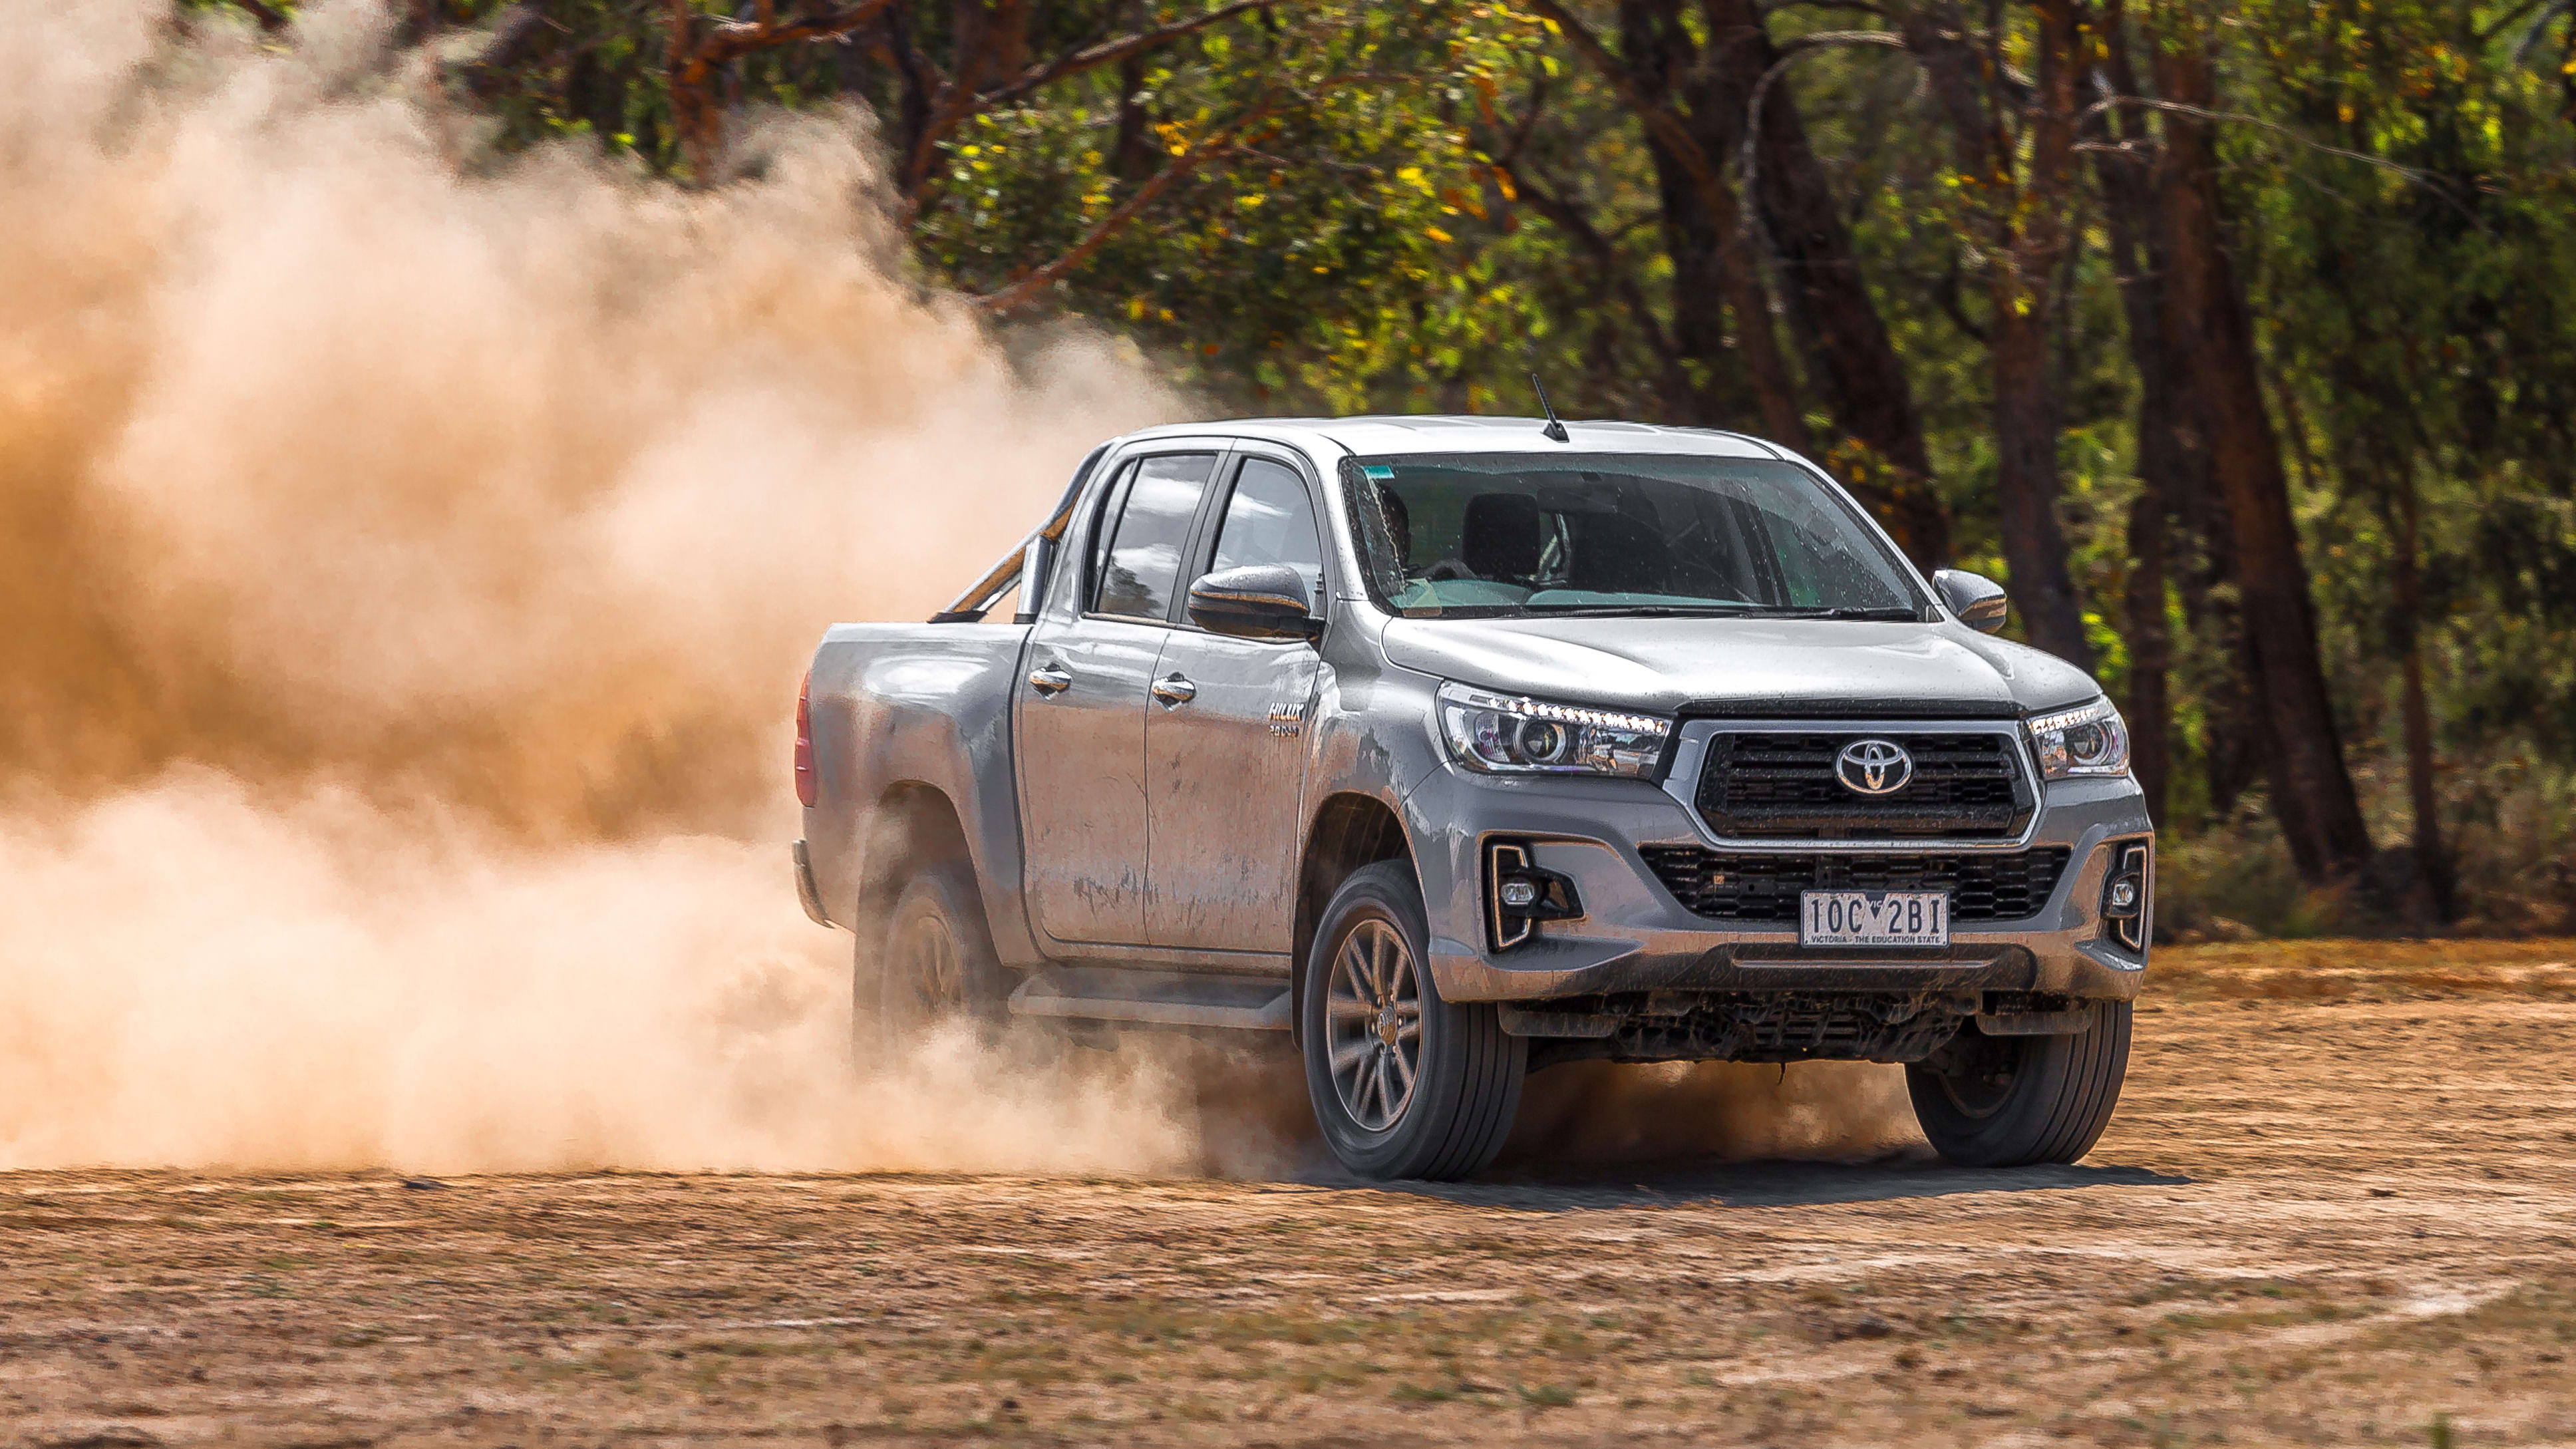 Toyota Hilux to get AEB, radar cruise, speed sign recognition